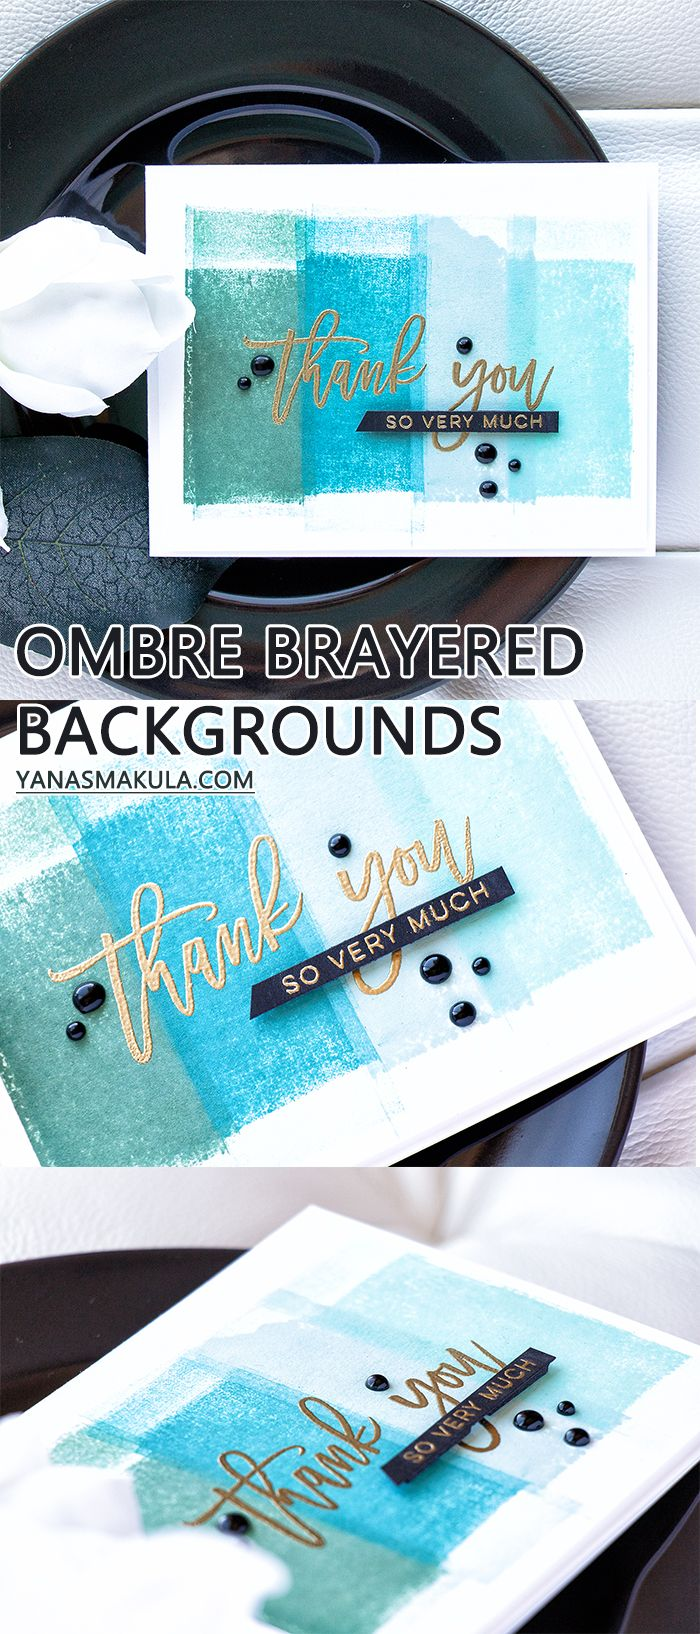 Ombre Backgrounds for handmade cards using a brayer and Simon Says Stamp dye inks. Video tutorial on my blog. Thank You So Very Much Card by Yana Smakula